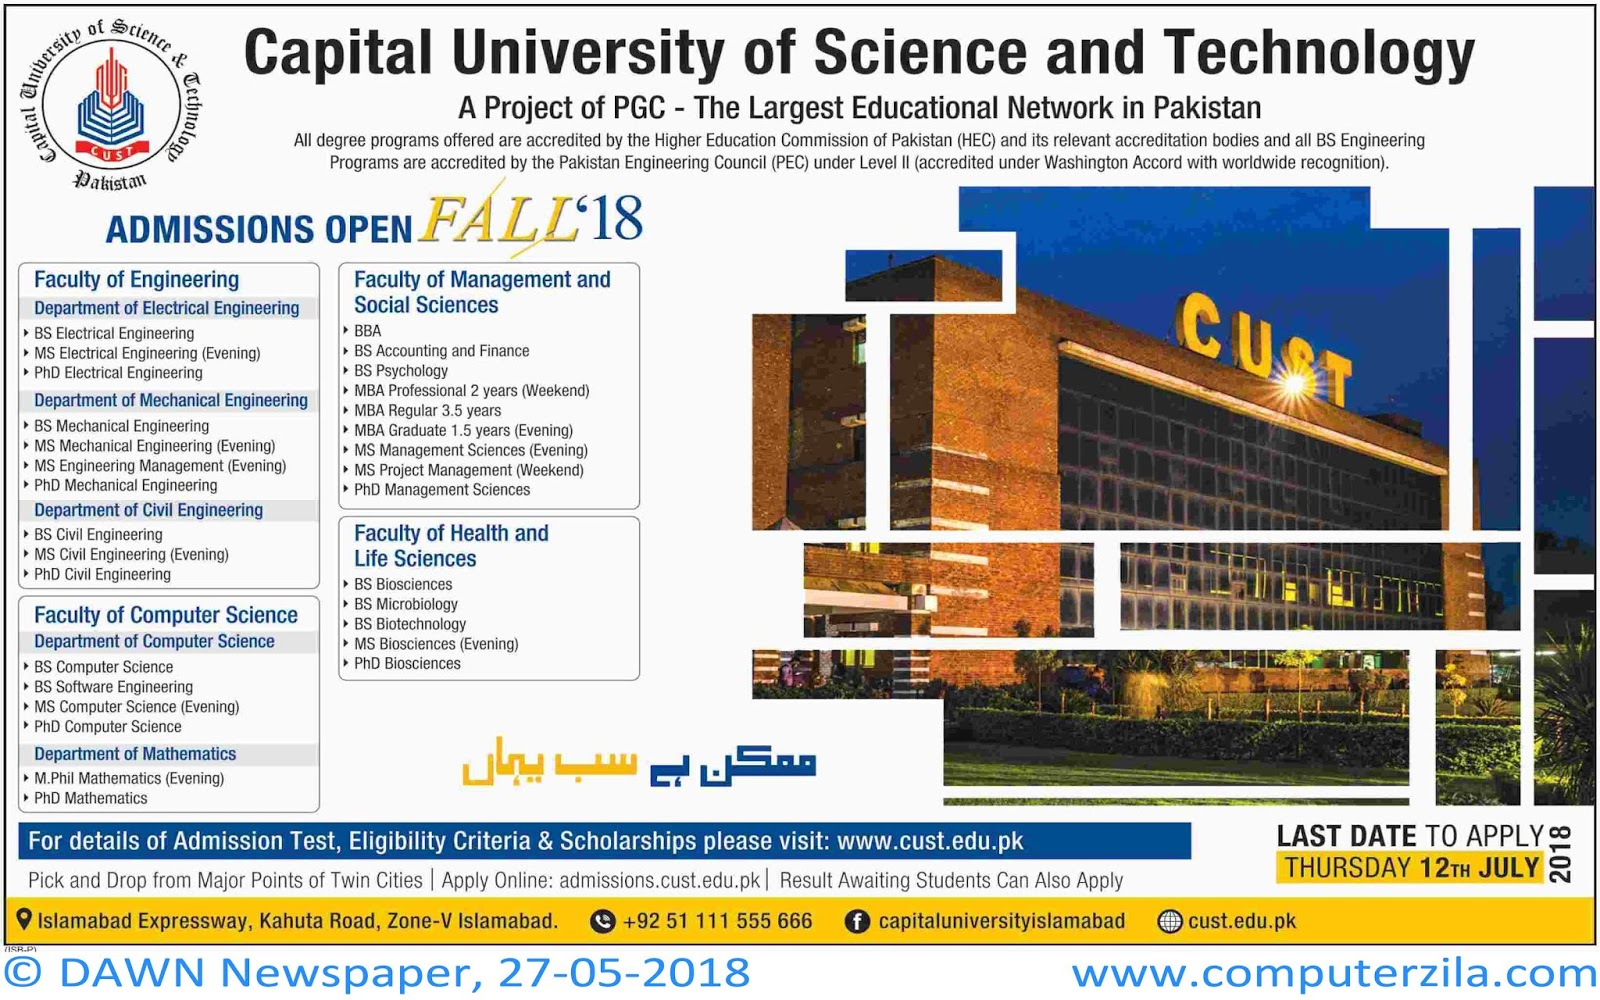 Capital University Of Science Technology (CUST) Admissions